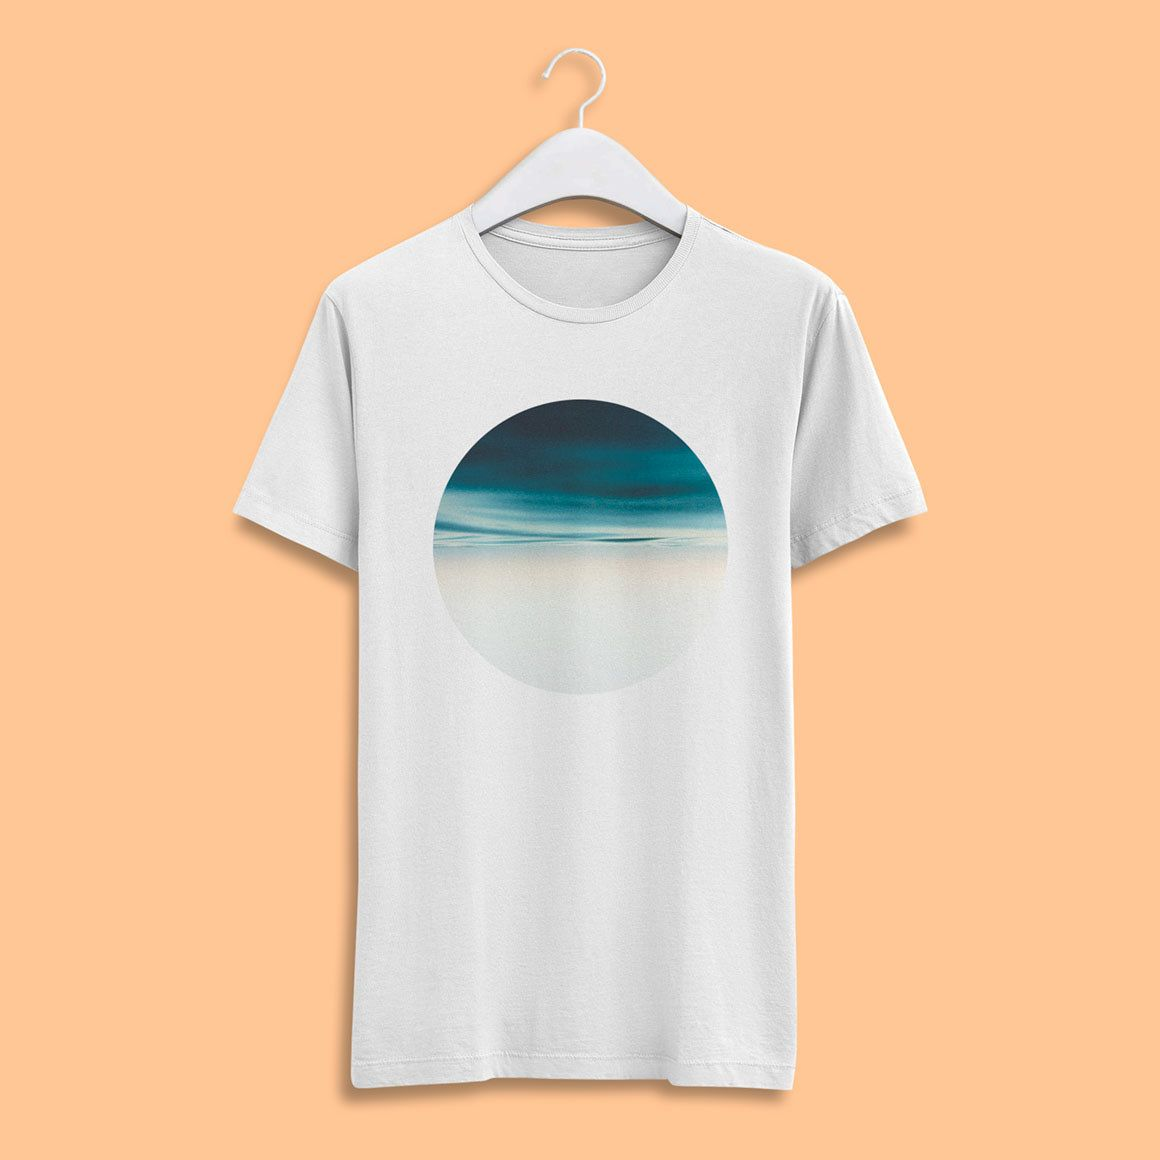 Men T Shirt Psd Mockup Available With A Realistic Appearance Awesome Men Tshirt Psd Mockup Shirt Mockup Free T Shirt Design Tshirt Mockup